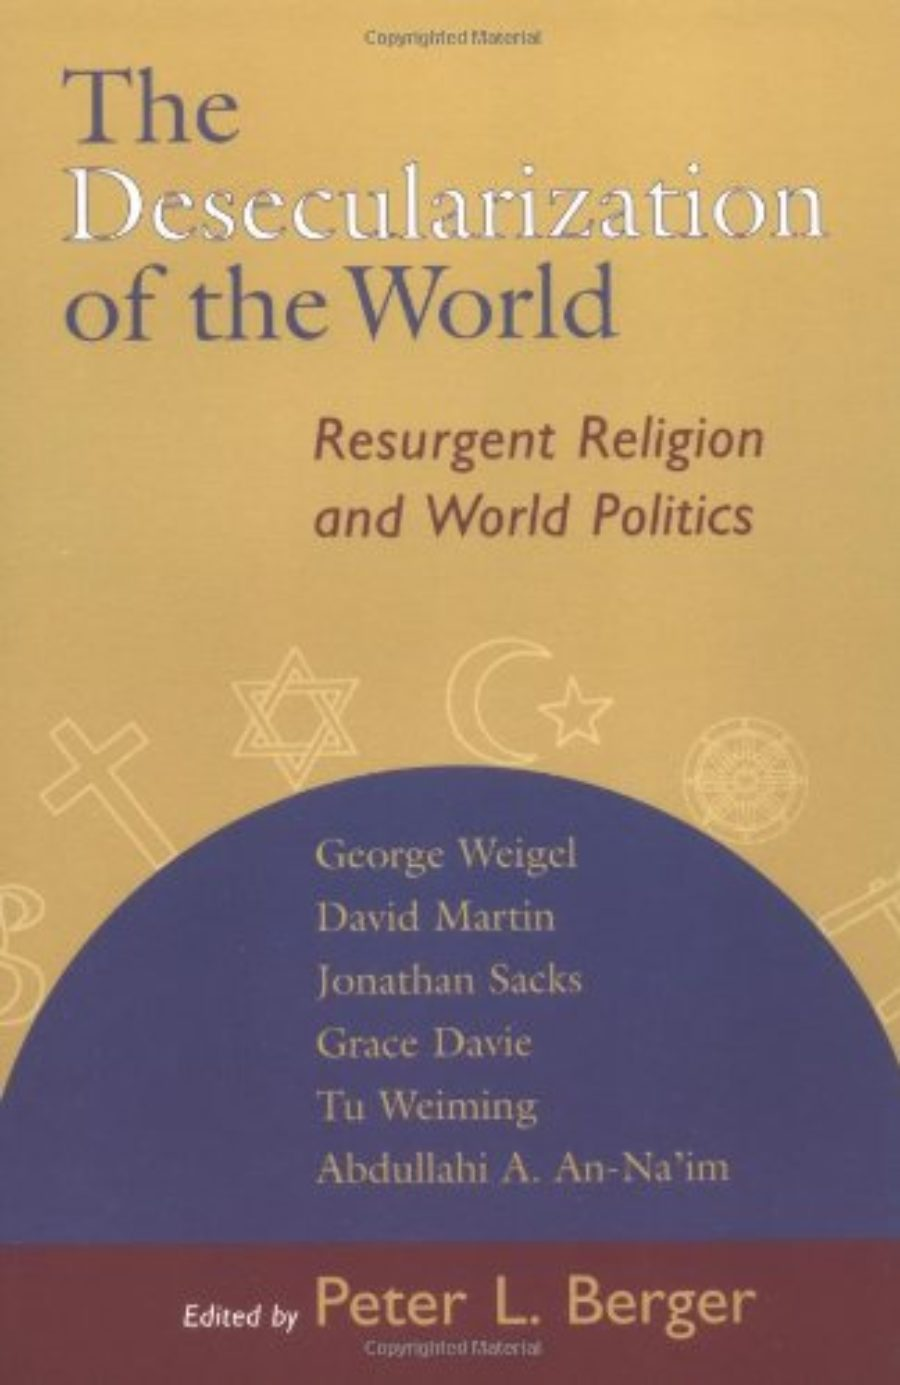 Cover of The Desecularization of the World: Resurgent Religion and World Politics